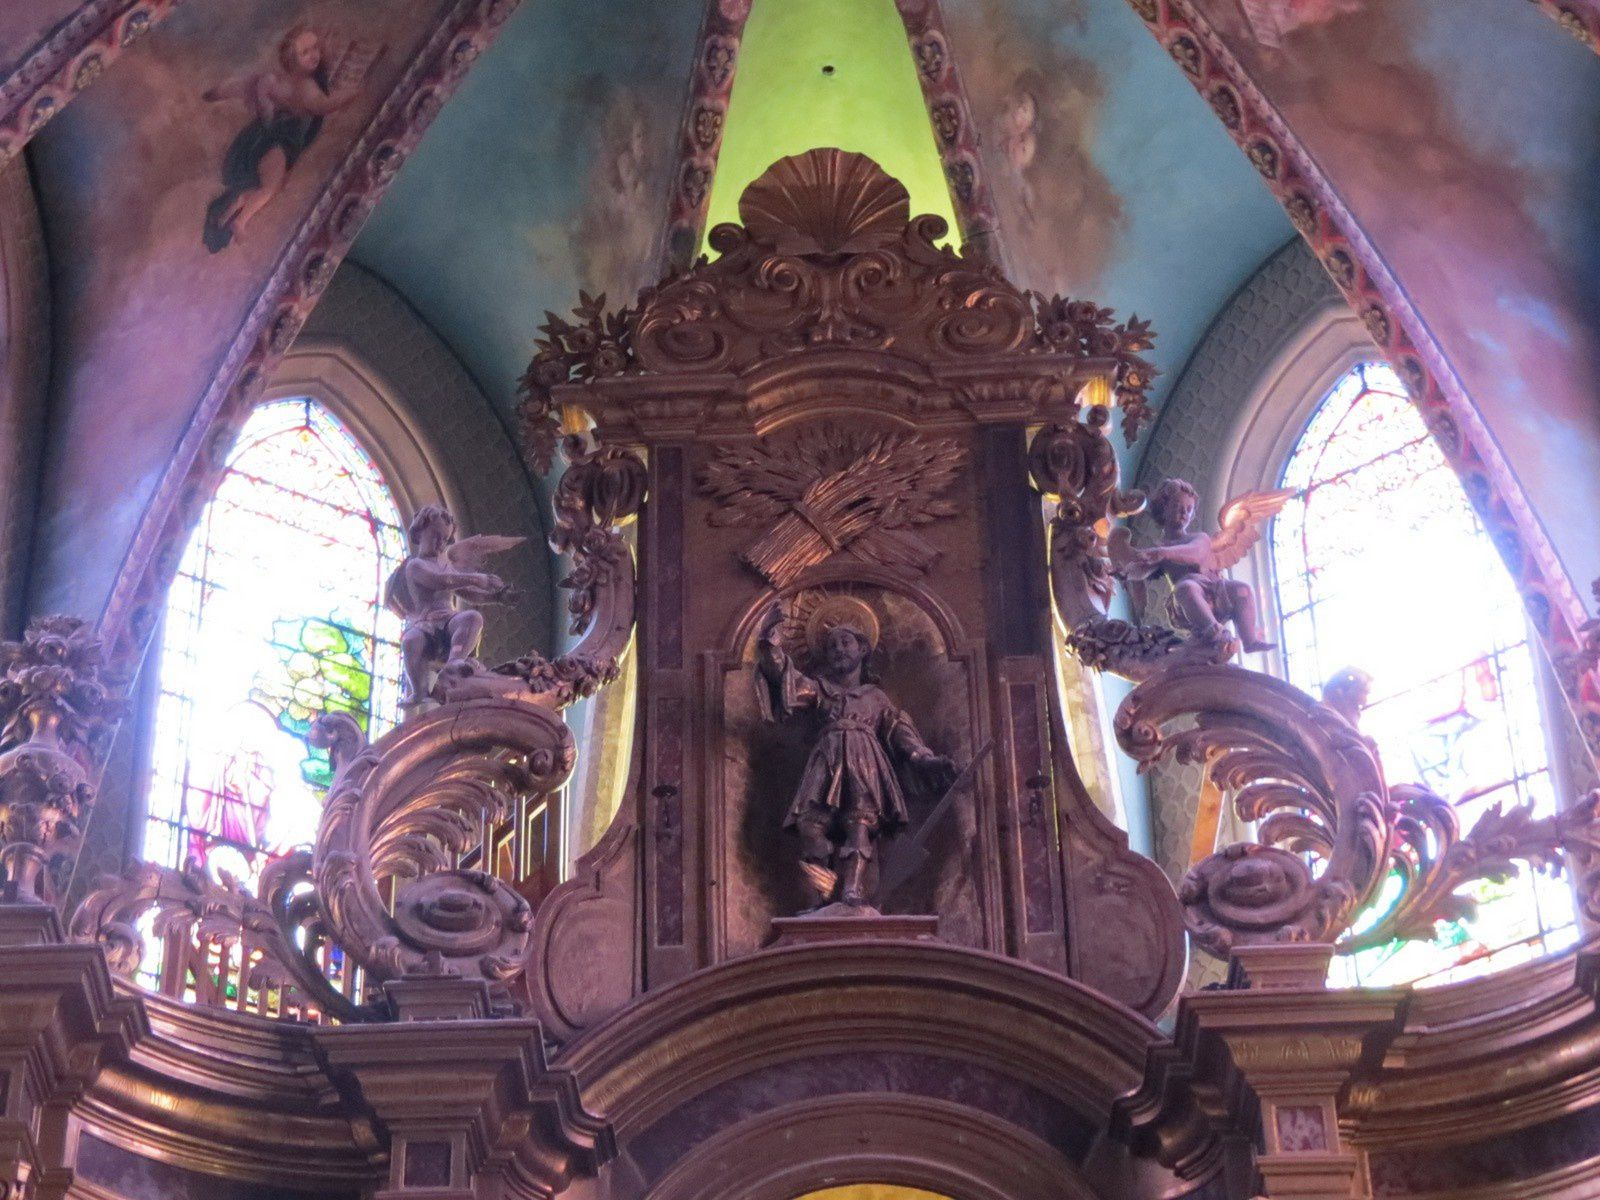 Eglise St Jacques 2